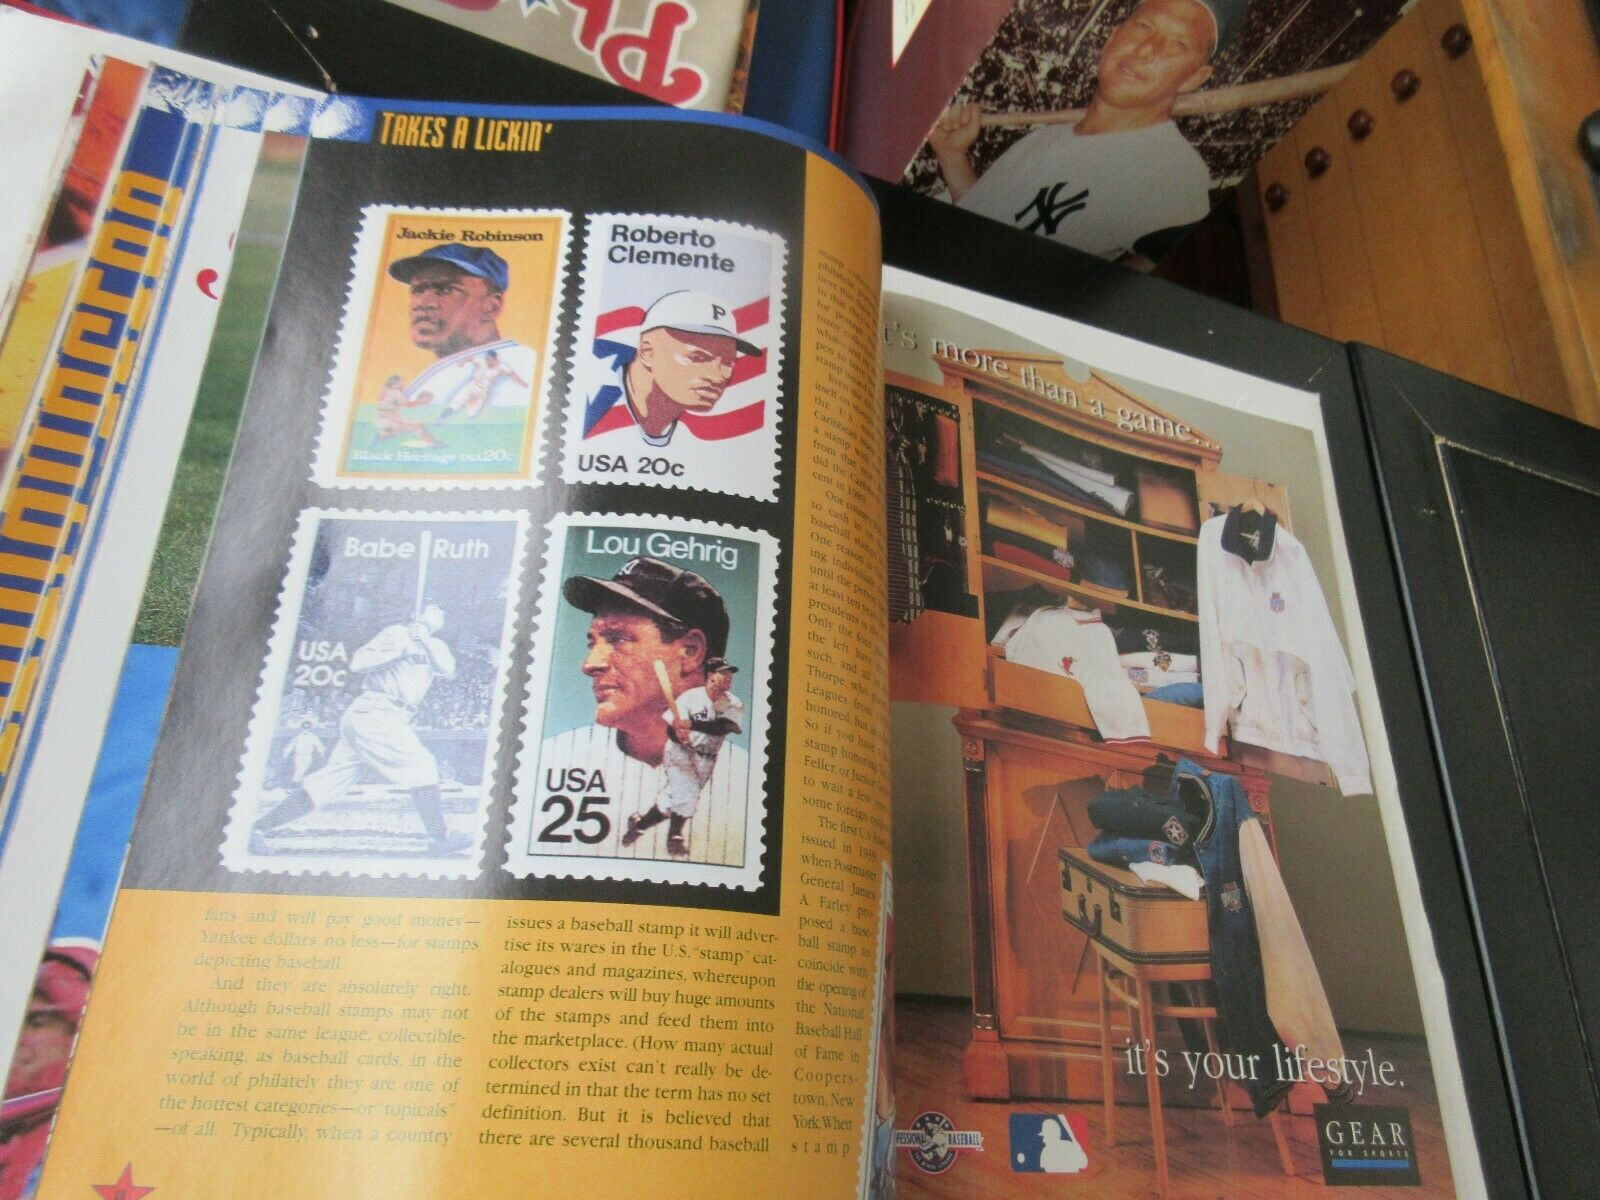 All Star Game , Major League Baseball Official Program